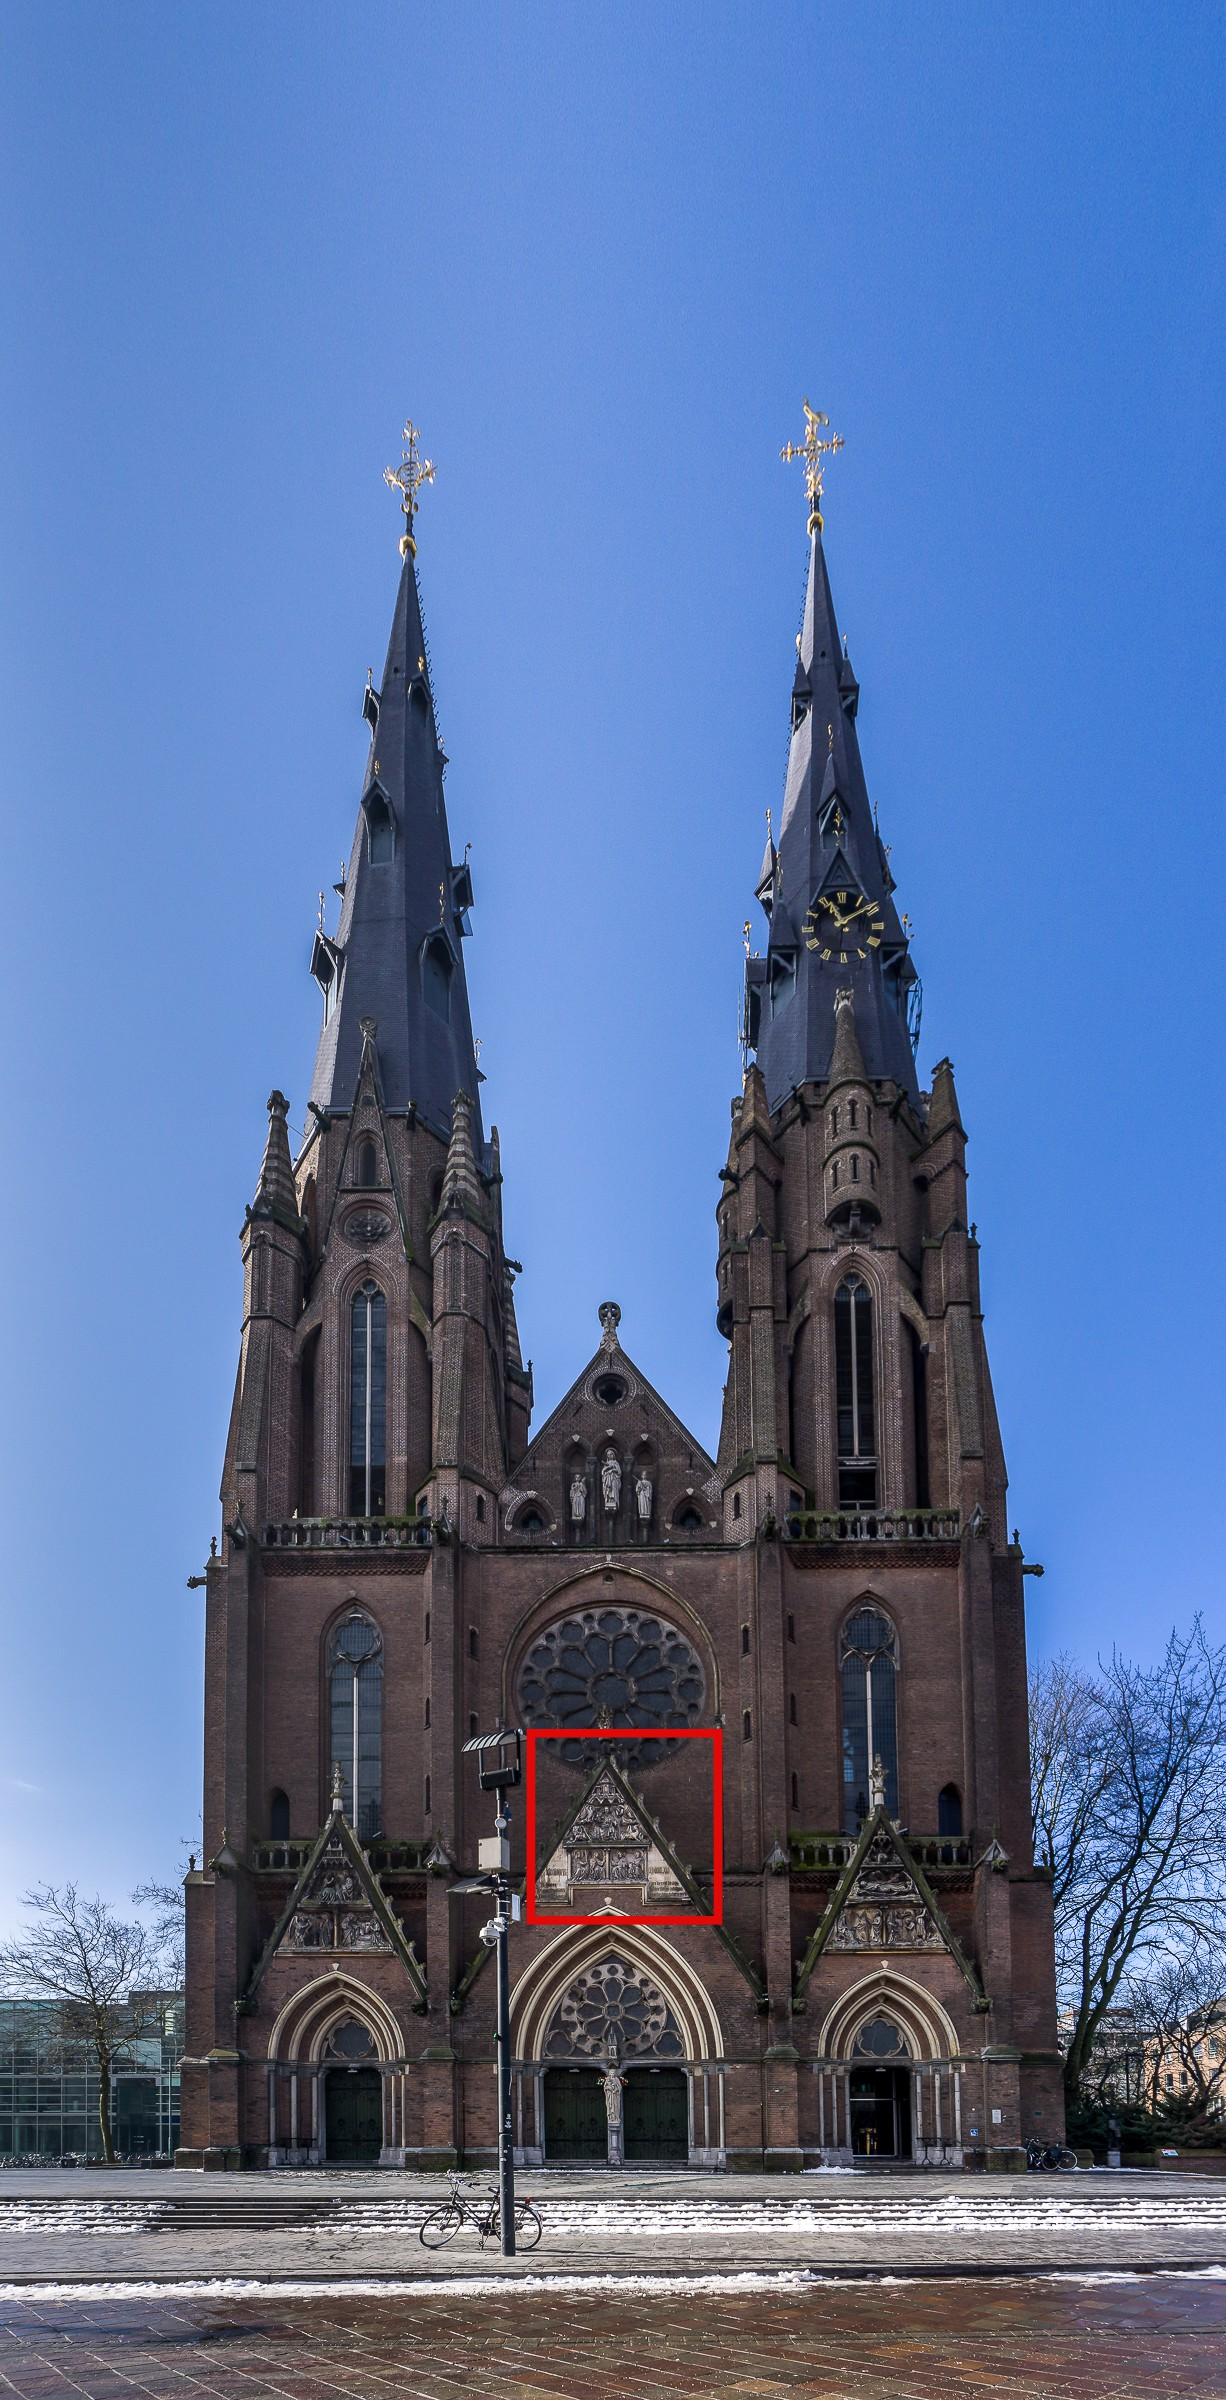 [Photoshop, Panorama] Sint Catharina church, Eindhoven